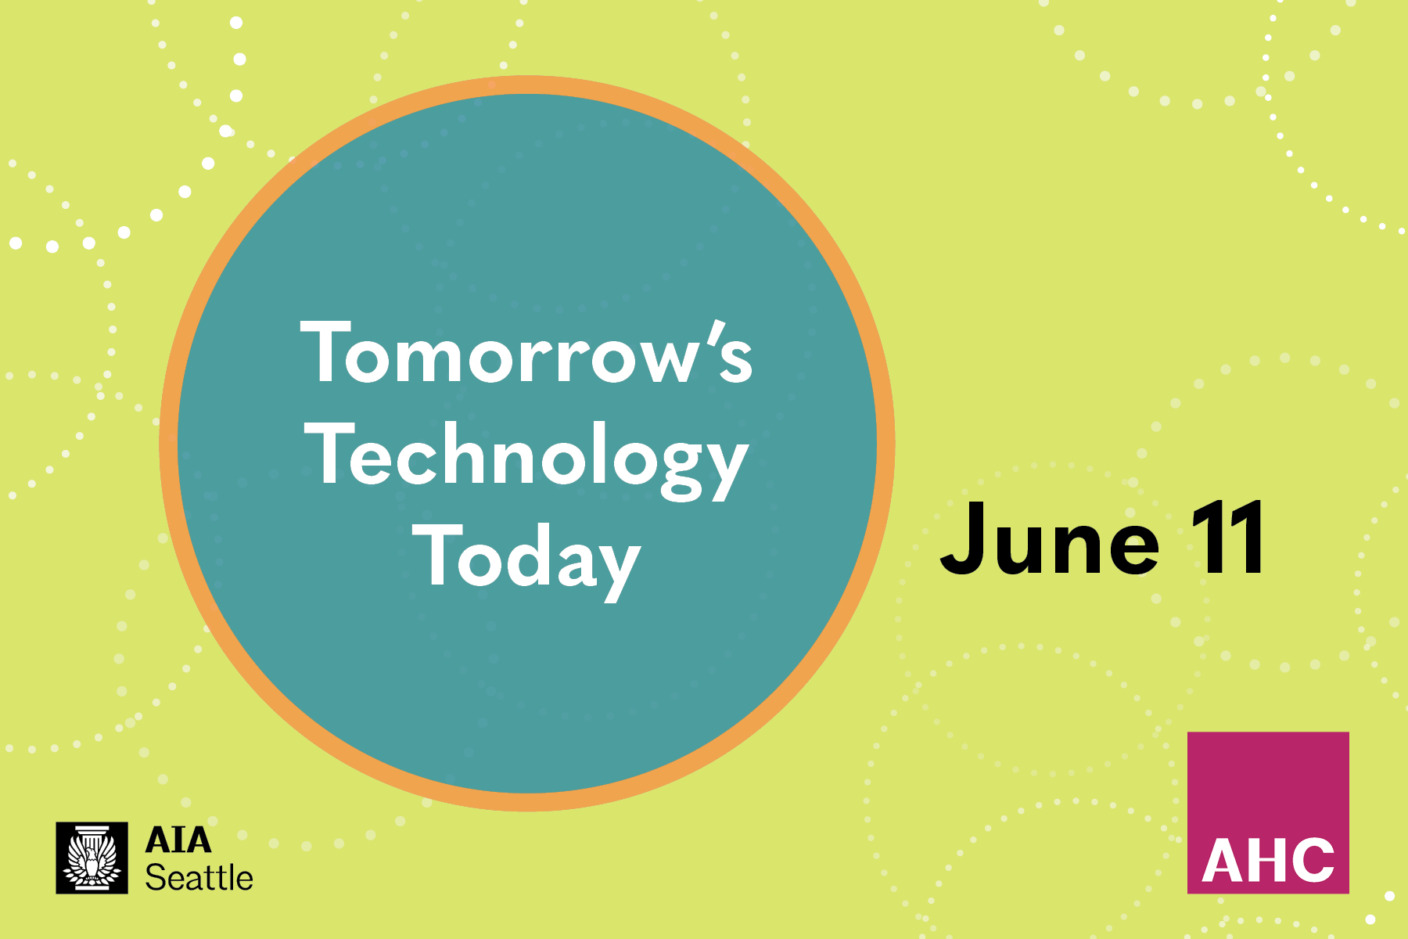 AHC's Summer conference is a series of presentations focusing on the impact of technology on healthcare today.